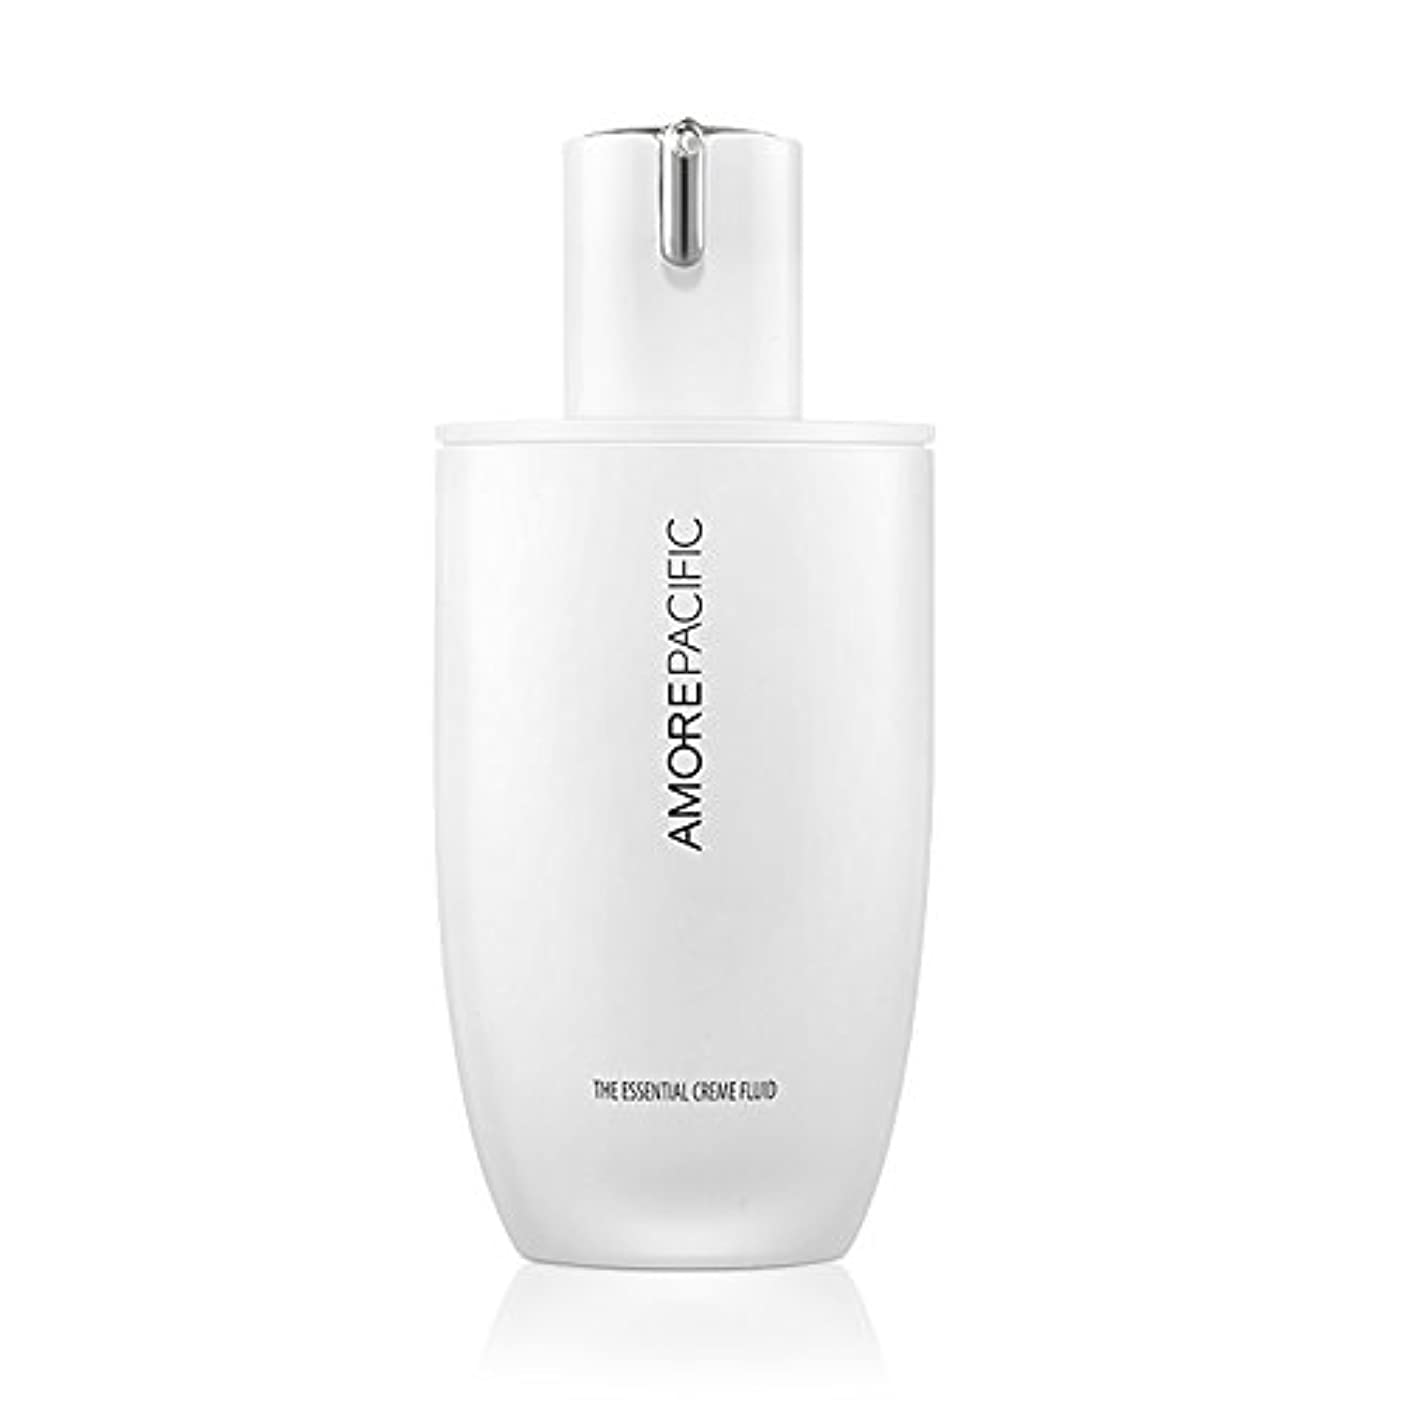 AMORE PACIFIC(アモーレパシフィック)ザ?エッセンシャル クリーム フルイド(THE ESSENTIAL CREME FLUID)90ml